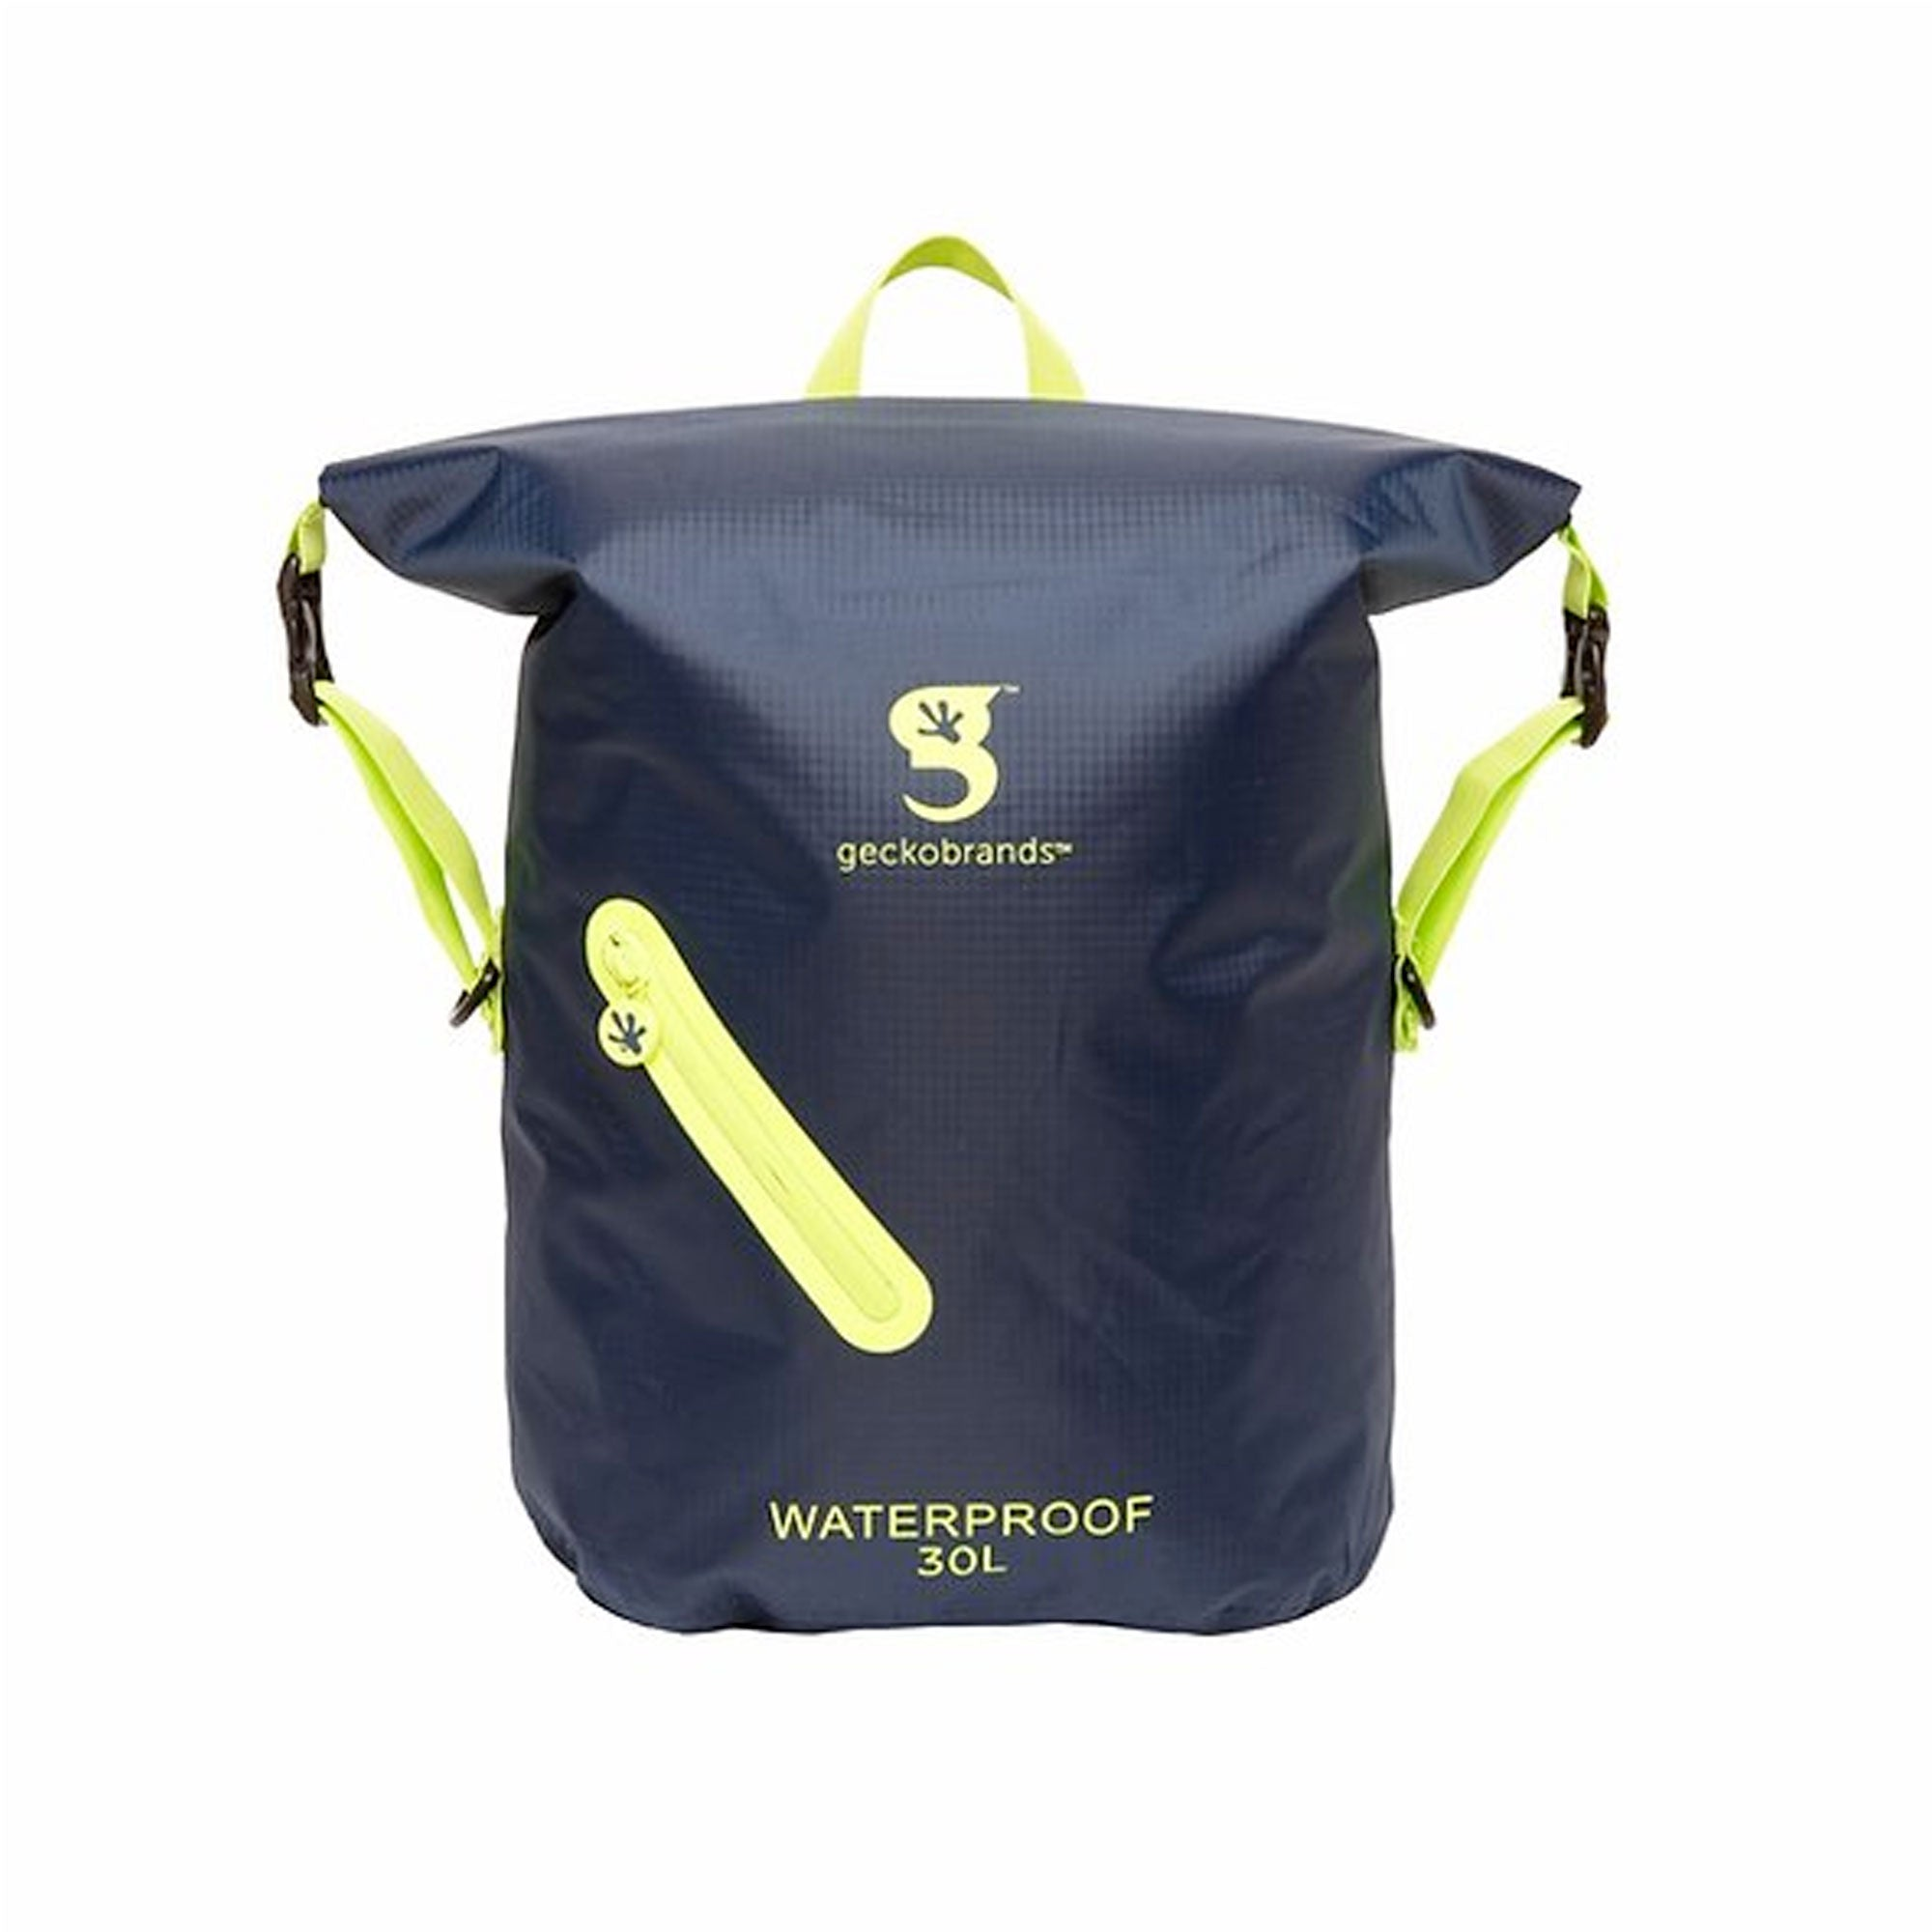 Geckobrands Lightweight 30L Waterproof Backpack - Navy/Green